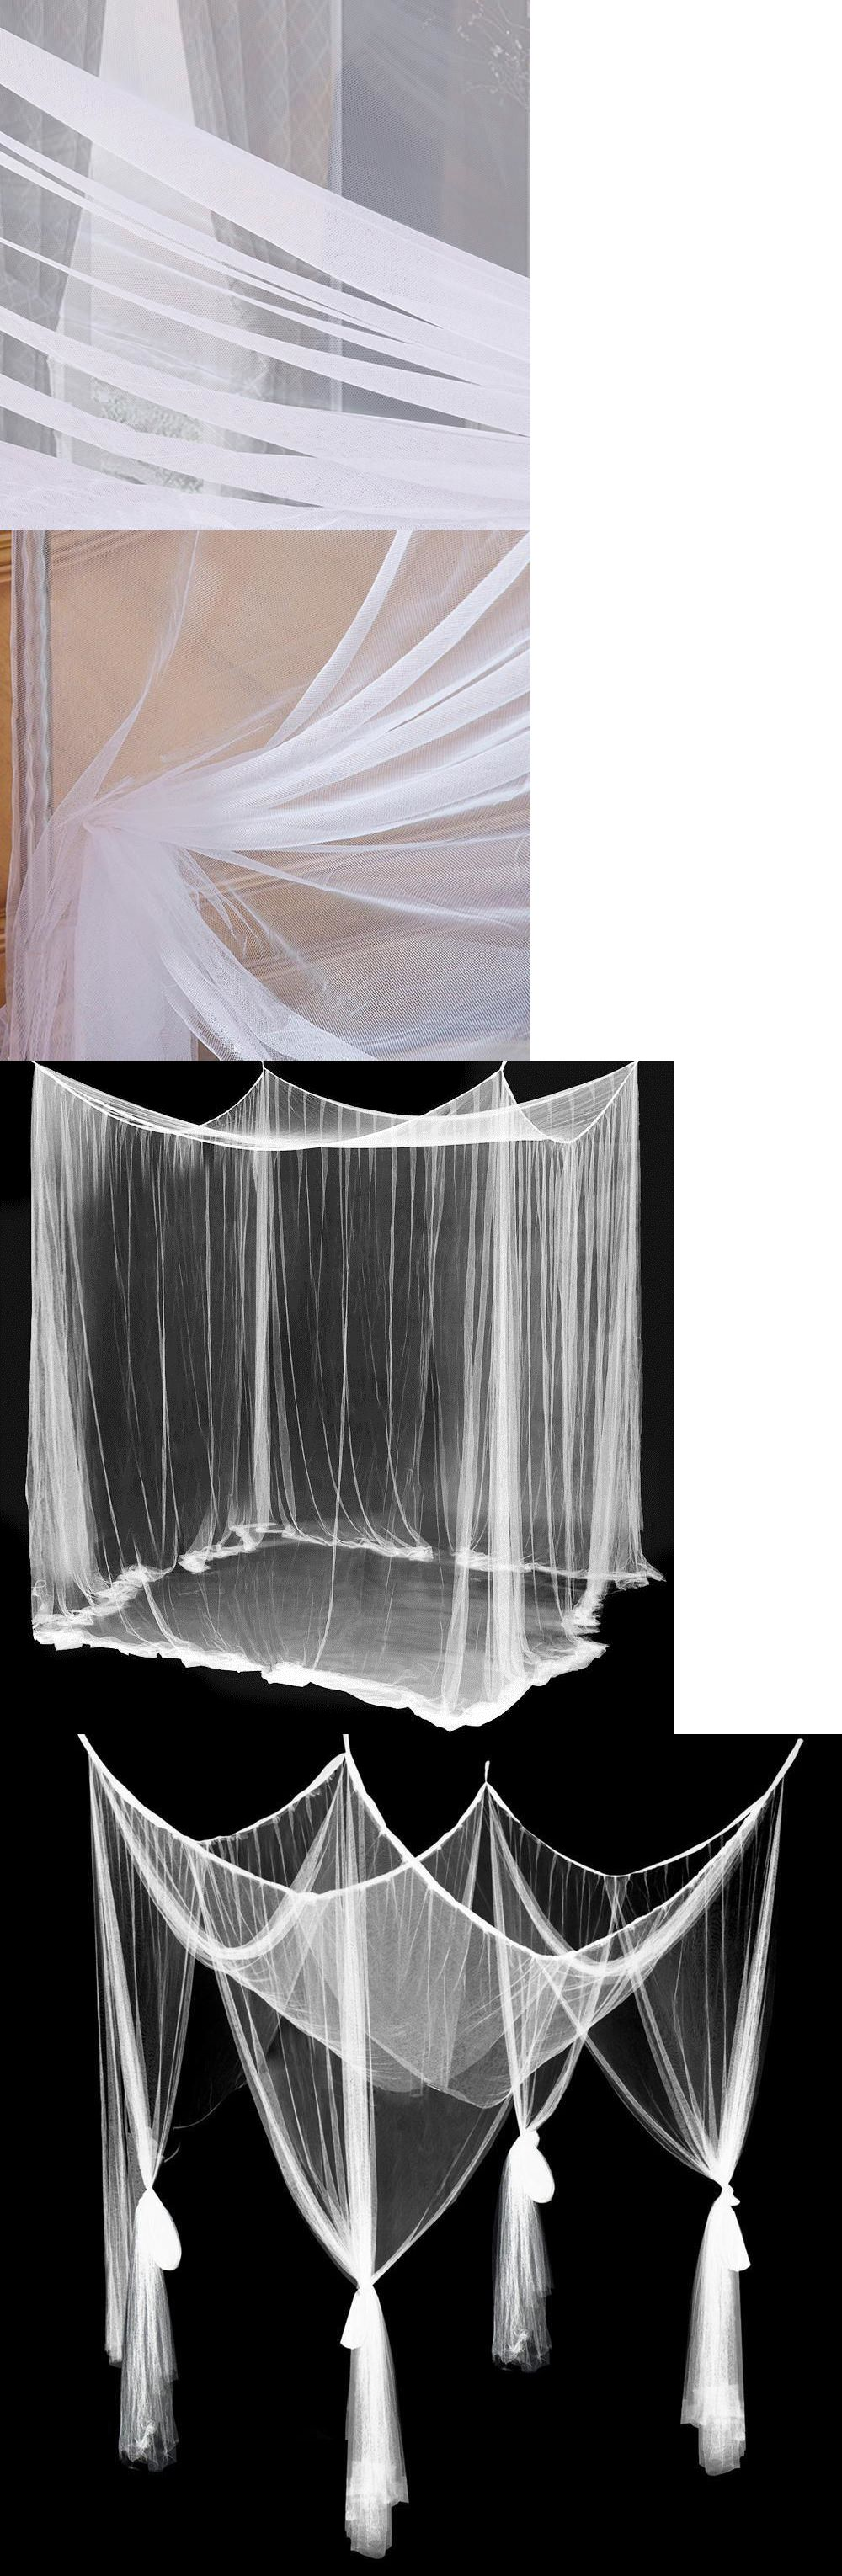 Canopies and Netting 176986 White Bed Canopy Four Corner